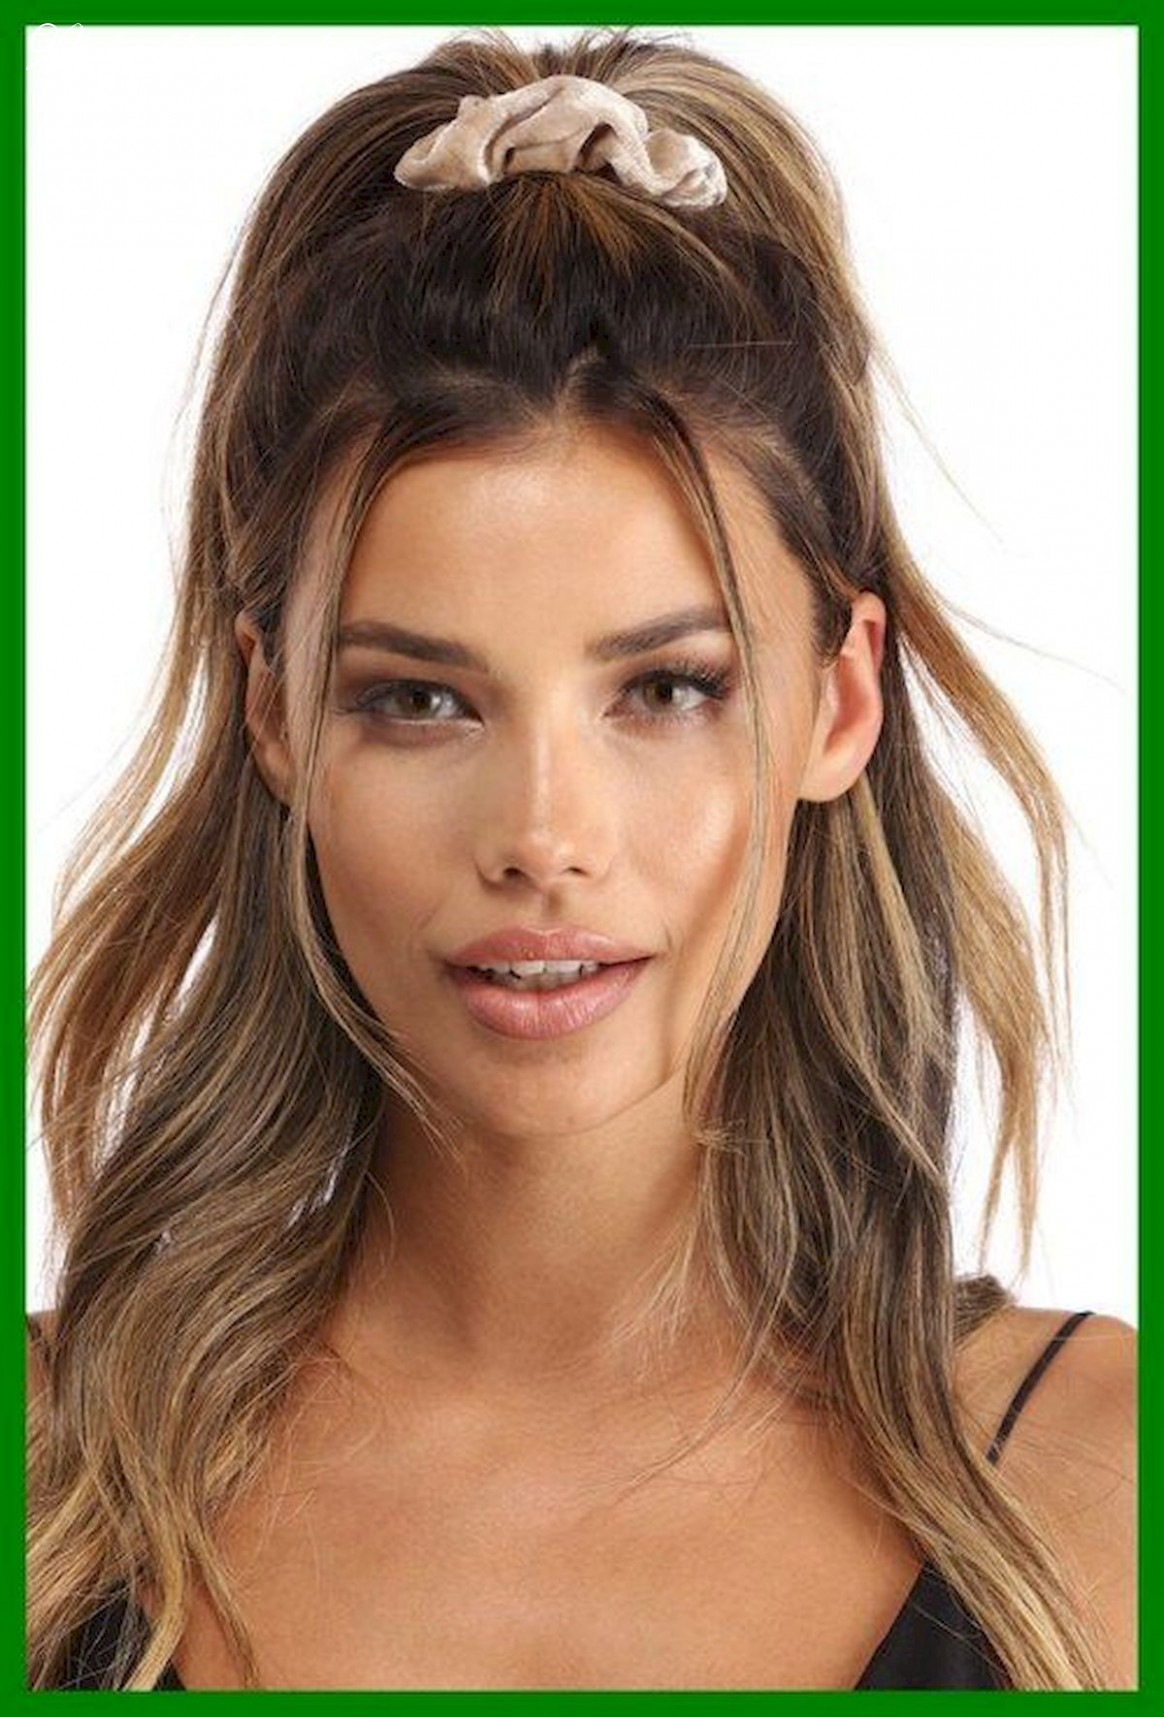 Aesthetic hairstyles easy easy & aesthetic hairstyles for short